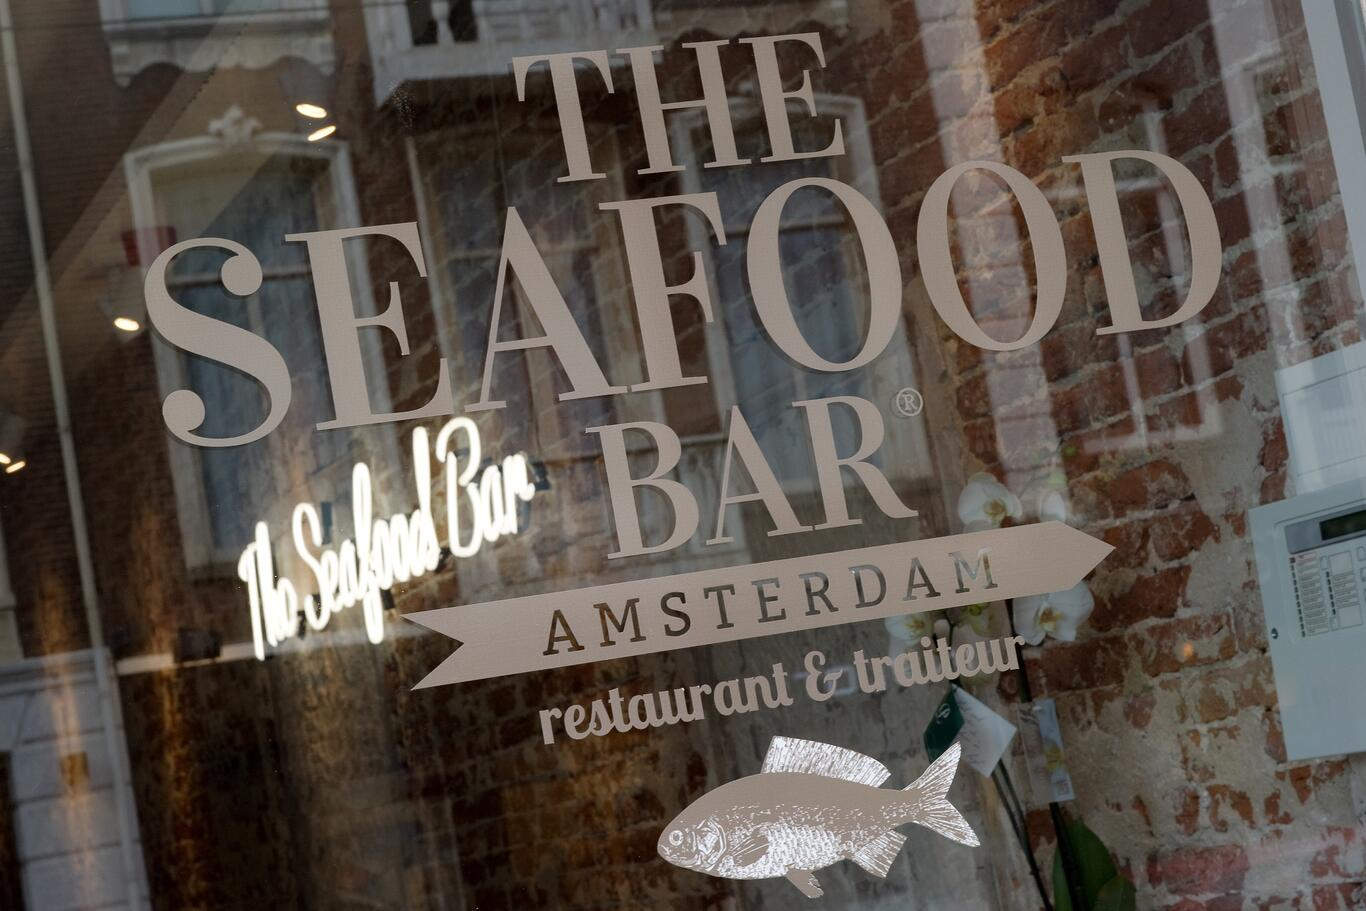 Photography of the logo on the facade of seafood bar, Amsterdam